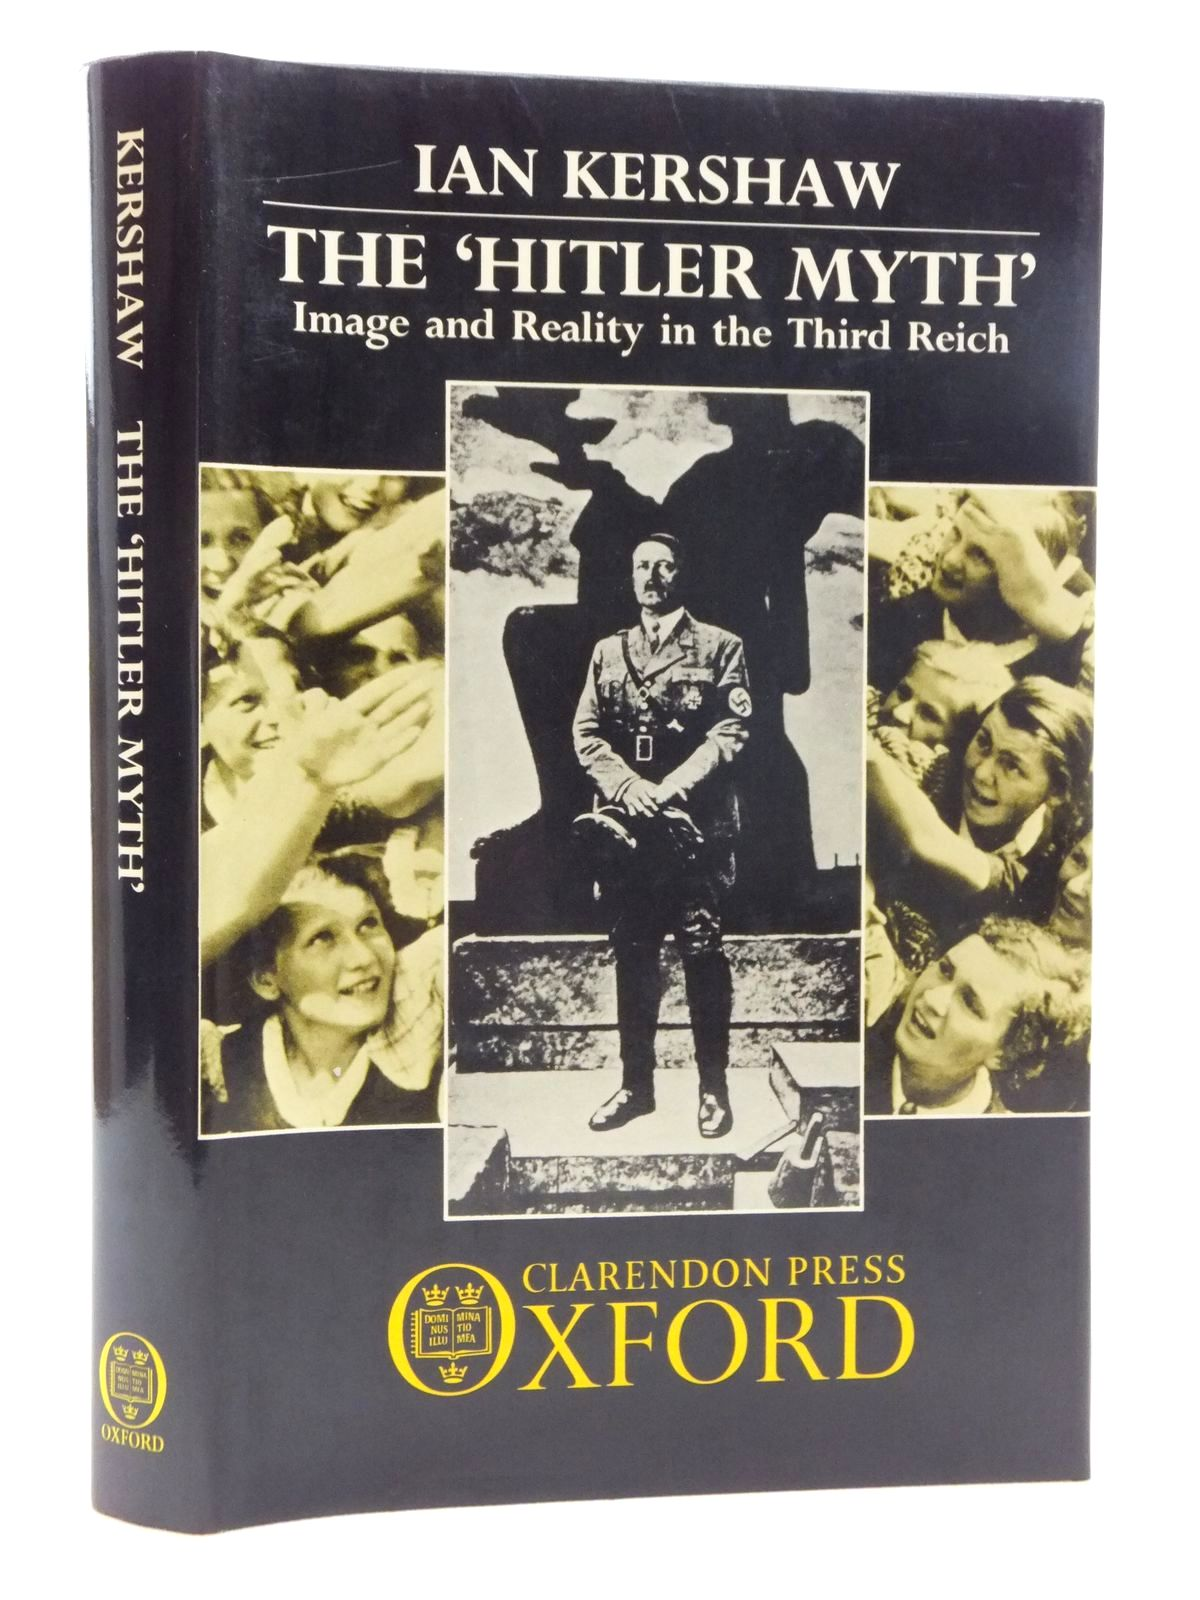 Photo of THE 'HITLER MYTH': IMAGE AND REALITY IN THE THIRD REICH written by Kershaw, Ian published by Clarendon Press (STOCK CODE: 1814961)  for sale by Stella & Rose's Books